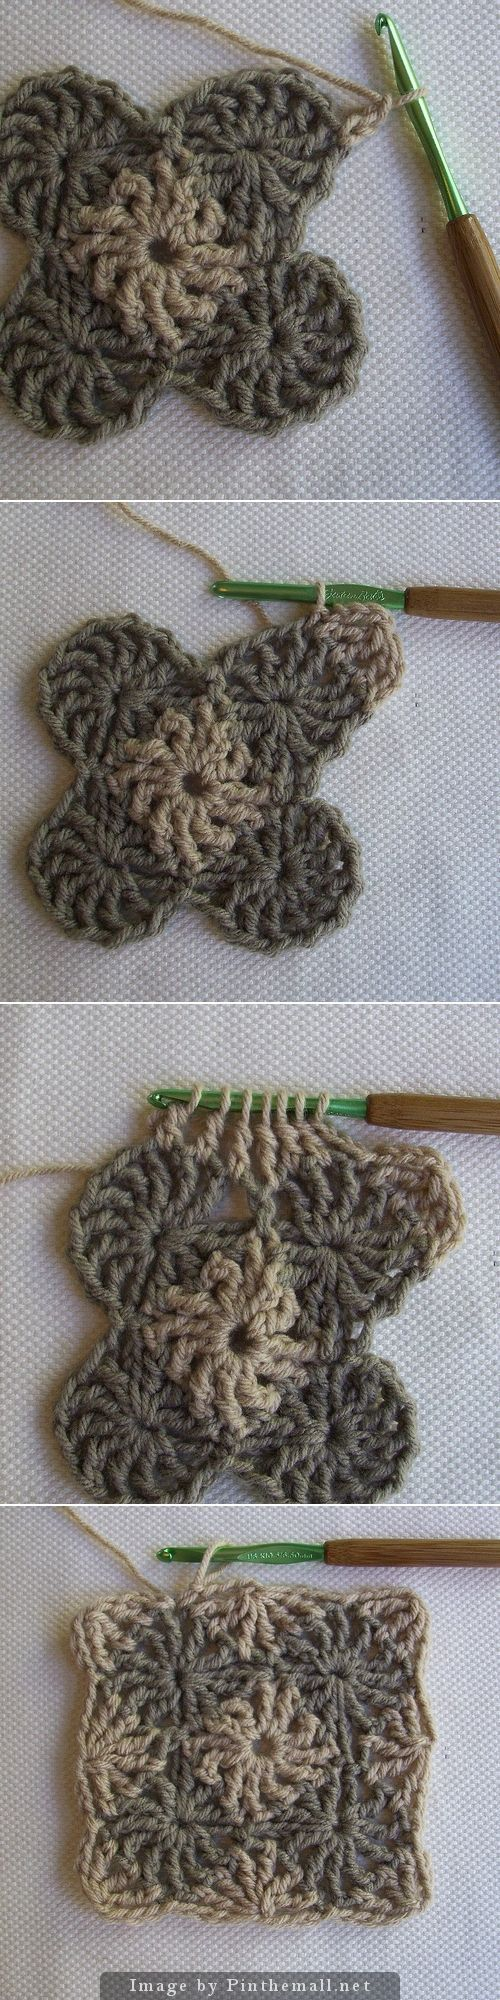 303 best Wolle images on Pinterest | Knits, Stricken and Arm knit ...